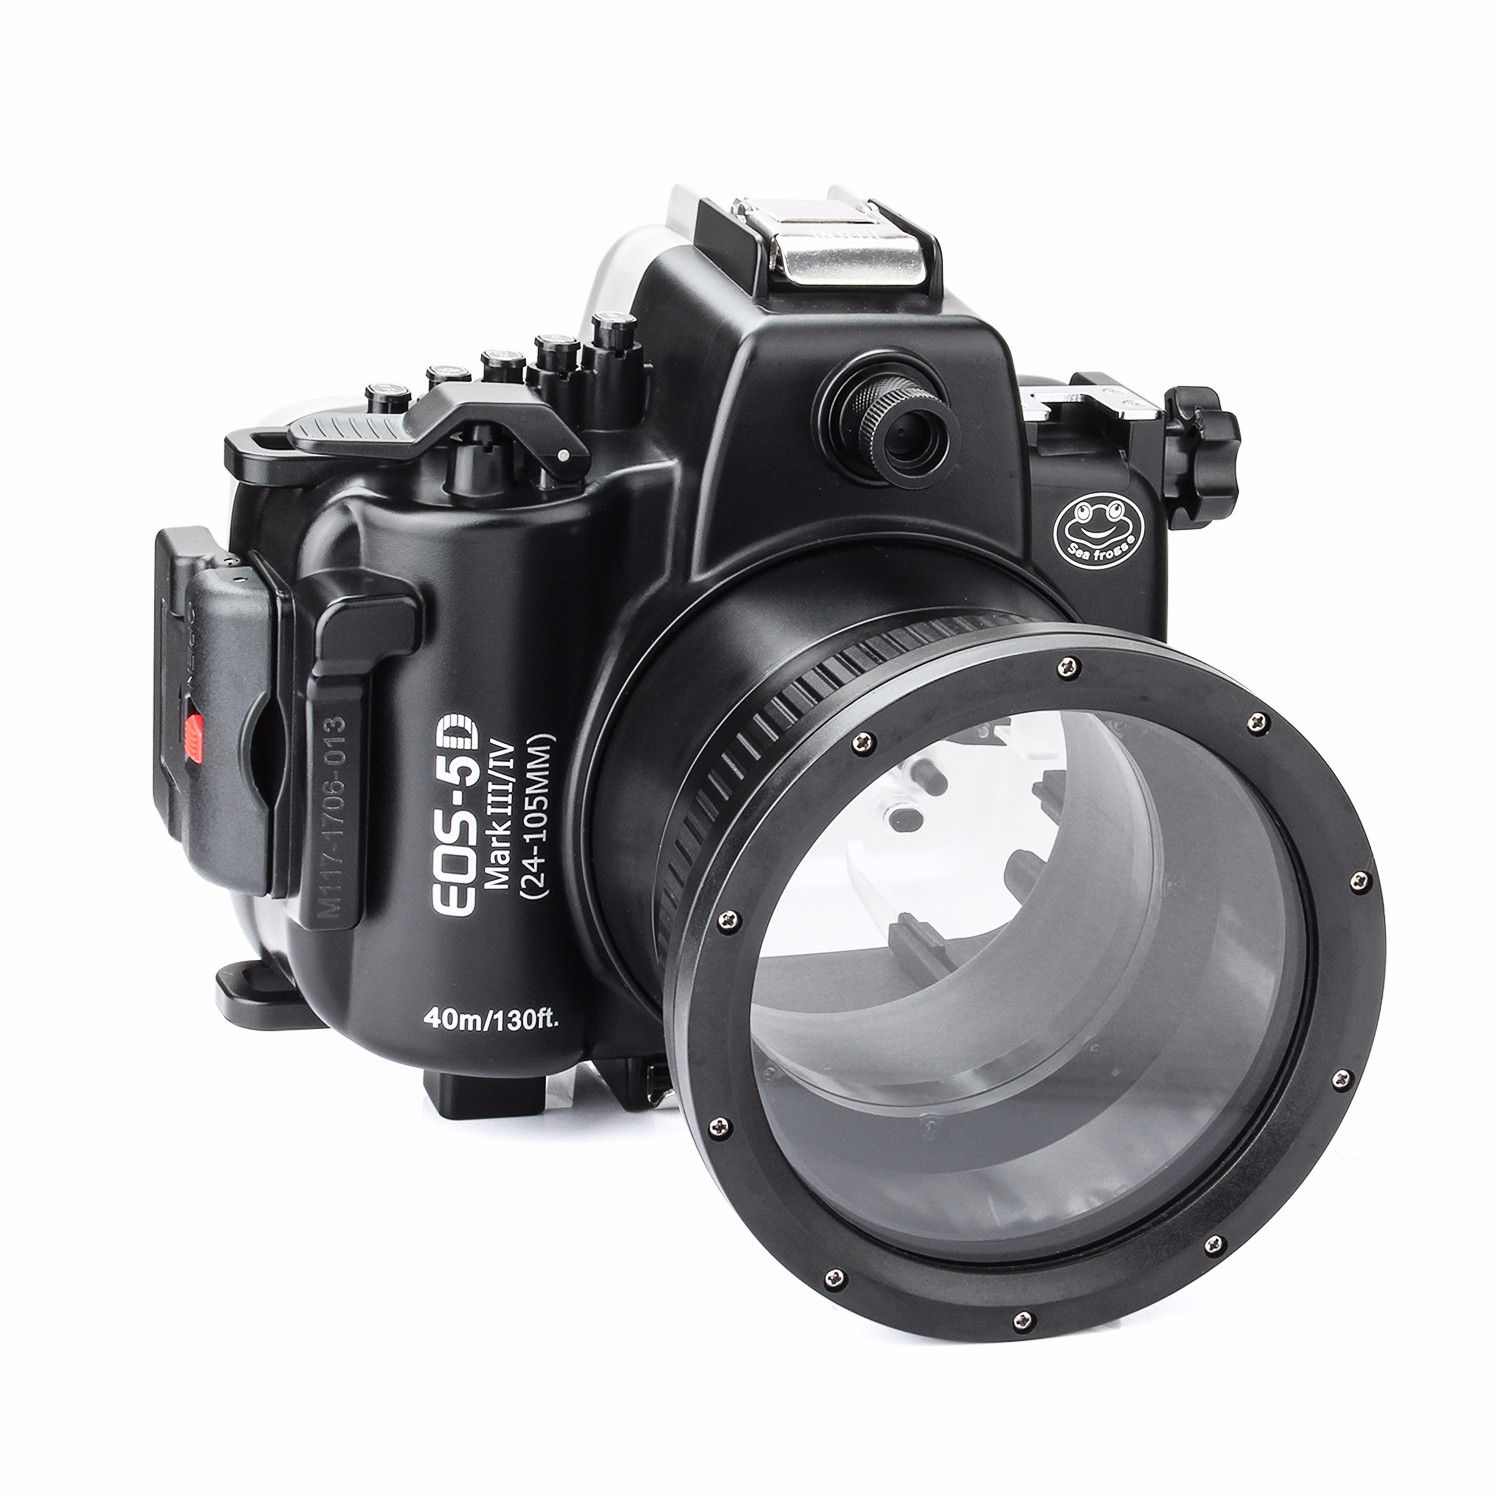 Free ship DHL SeaFrogs 40M 130ft Diving Waterproof Housing Case for Canon 5D III IV 5D3 5D4